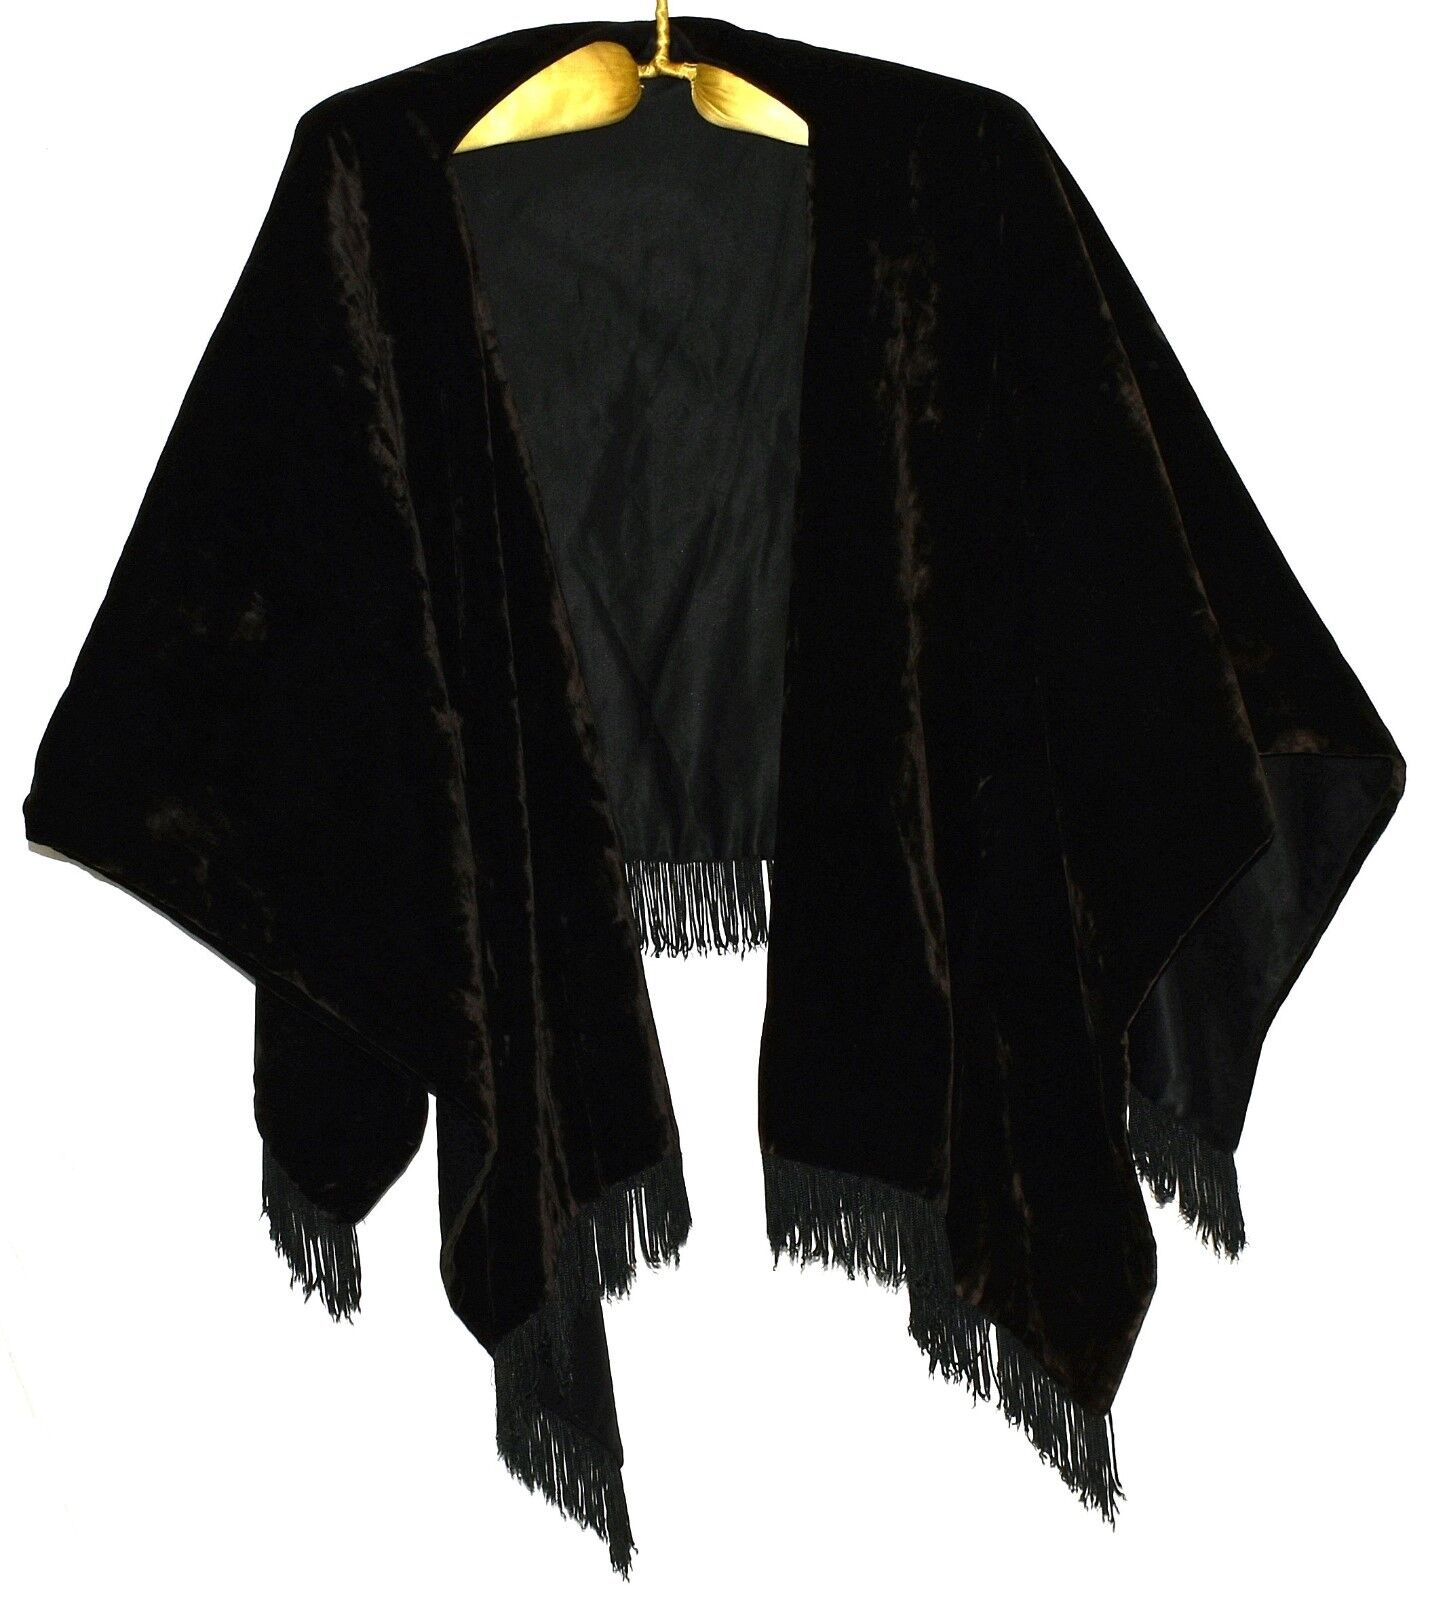 Antique 1890s Vintage Victorian Black Velvet Fully Lined Shawl with 2